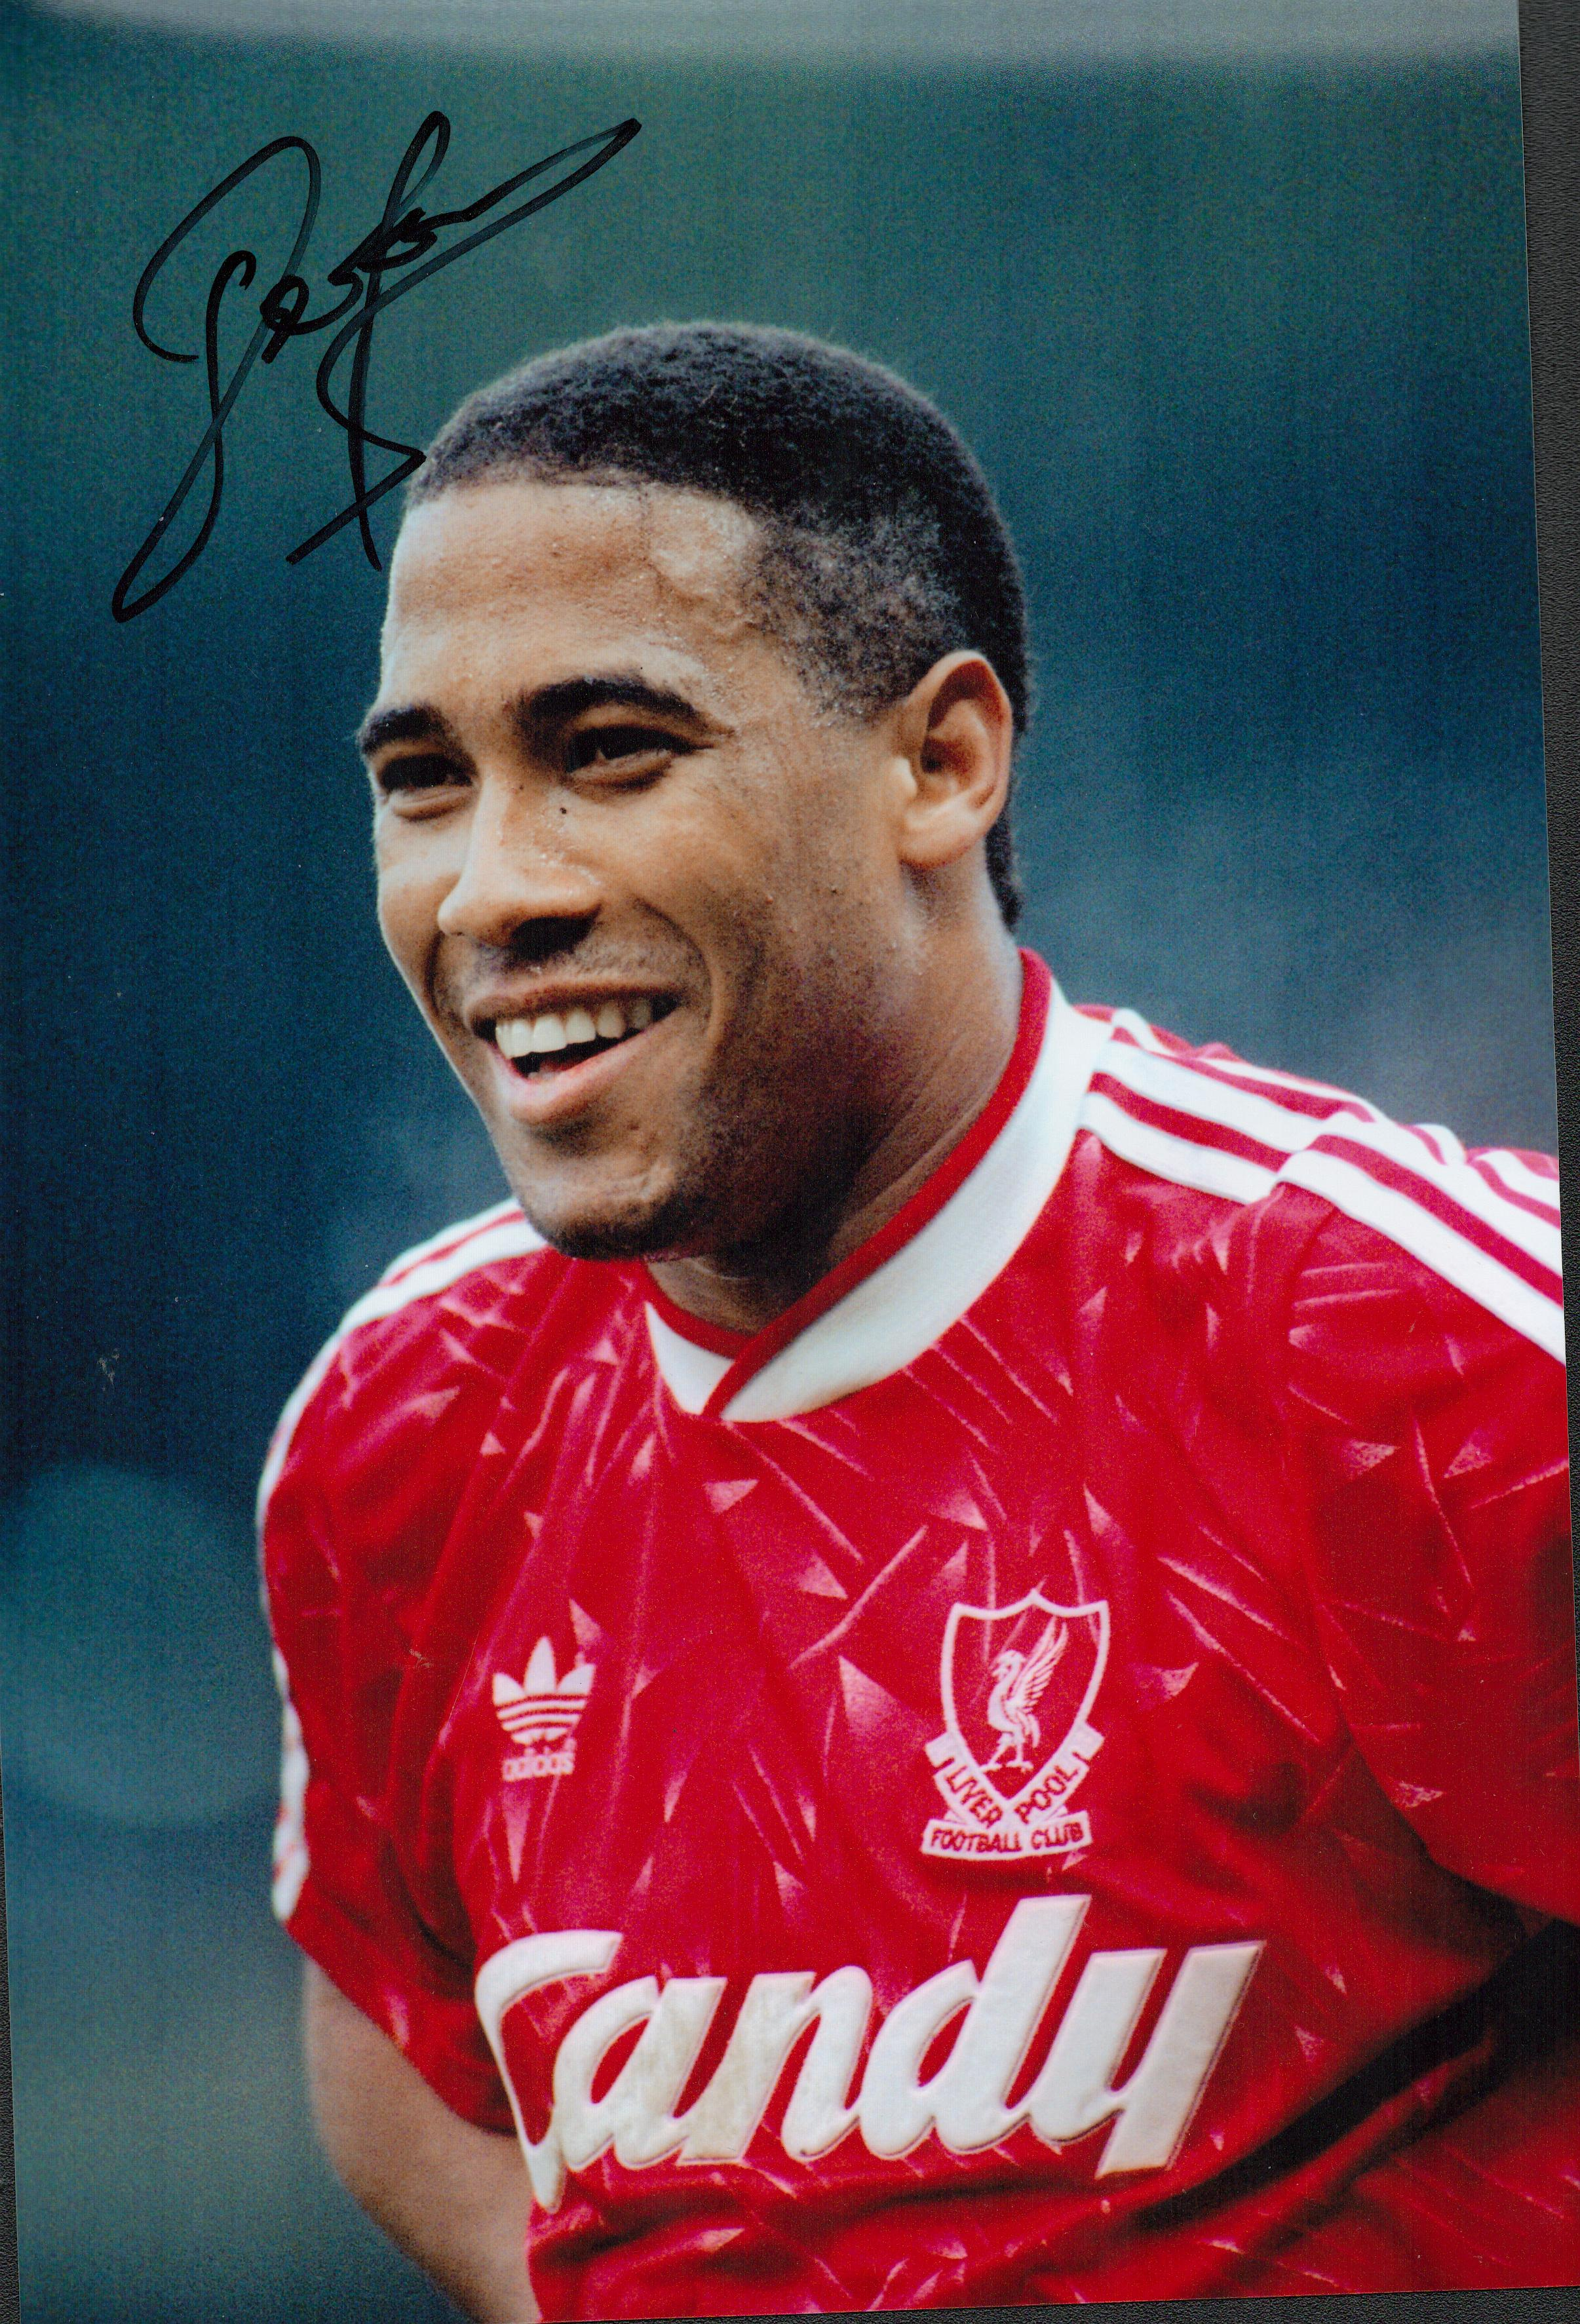 Football John Barnes 12x8 signed colour photo pictured while playing for Liverpool. Good